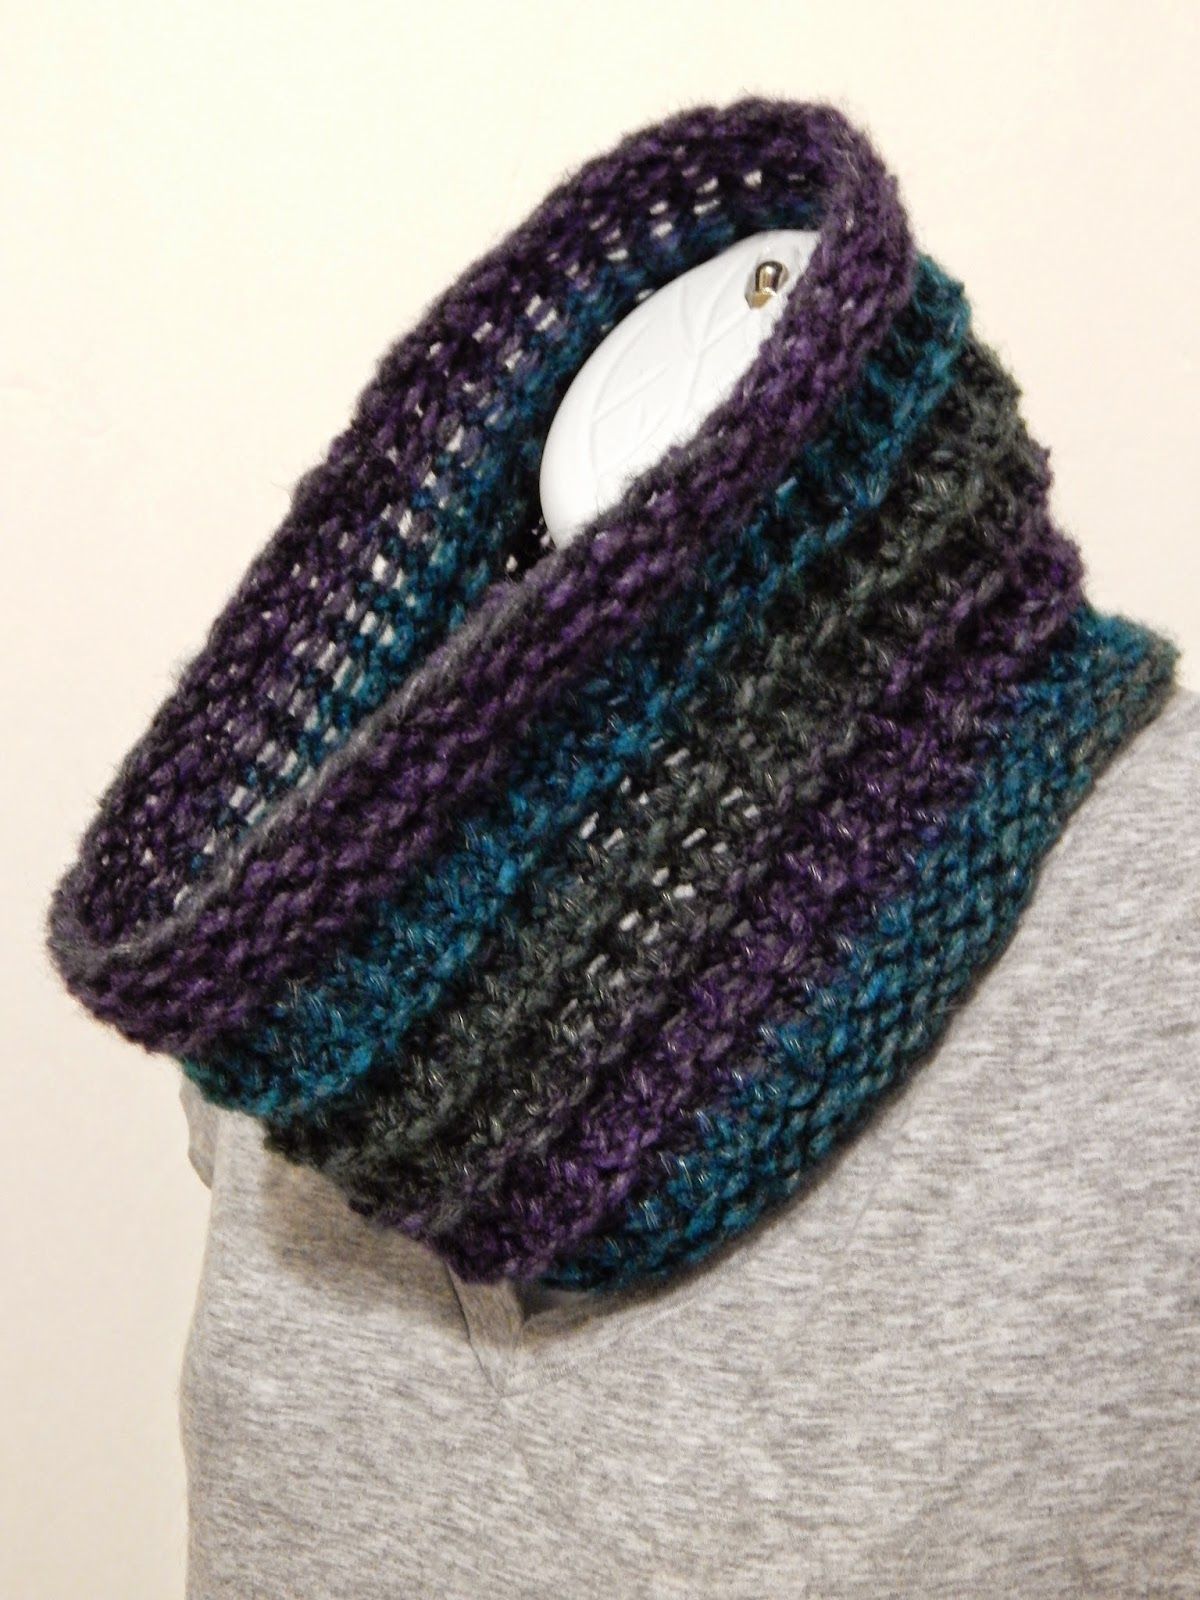 Loom Knitting Stitches Pictures : Jovial Knits: Loom Knit Cowl: Ridgeway Cowl